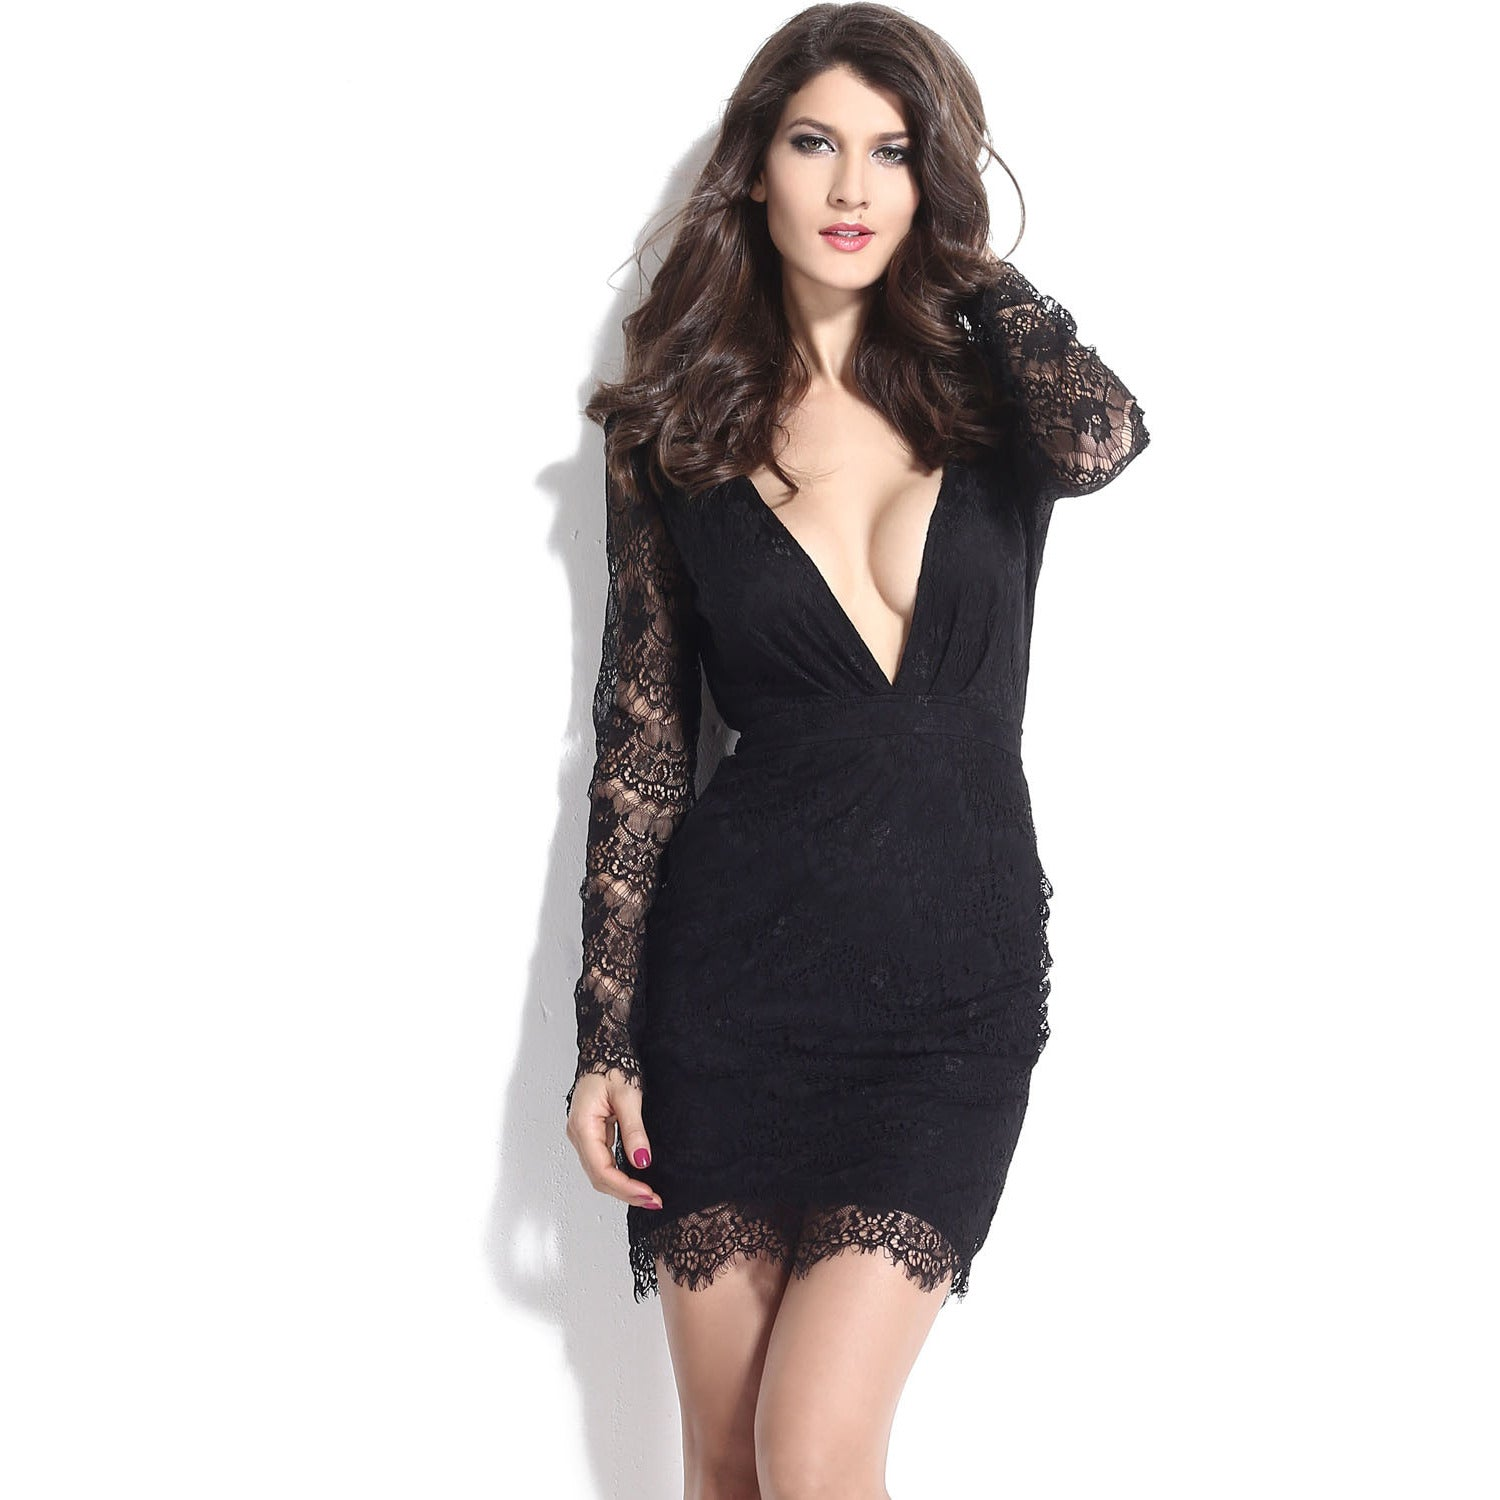 V-Neck Sleeve Lace Mini Dress Sale LAVELIQ - LAVELIQ - 4